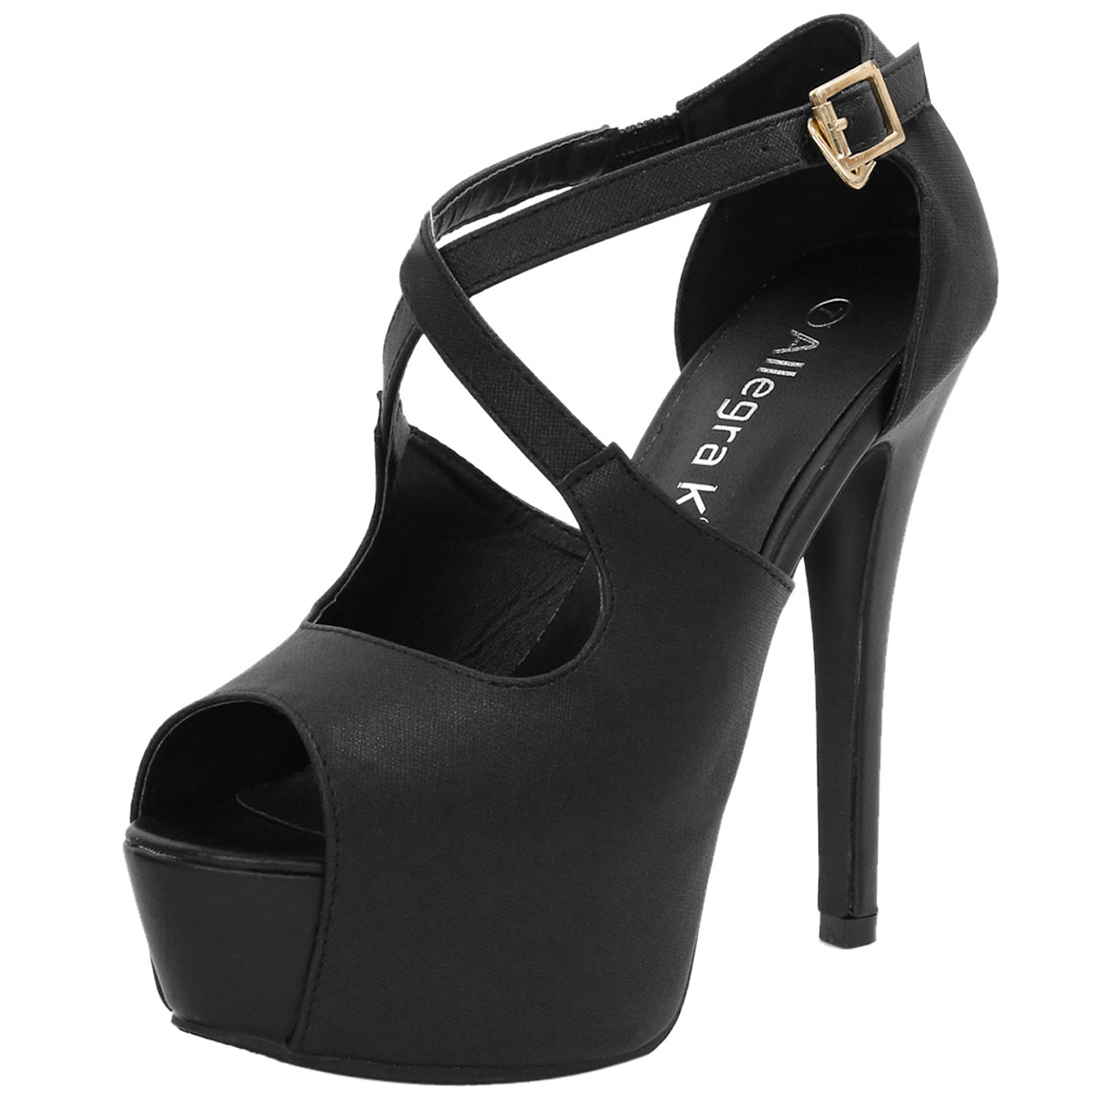 Woman Peep Toe High Heel Crisscross Straps Platform Sandals Black US 8